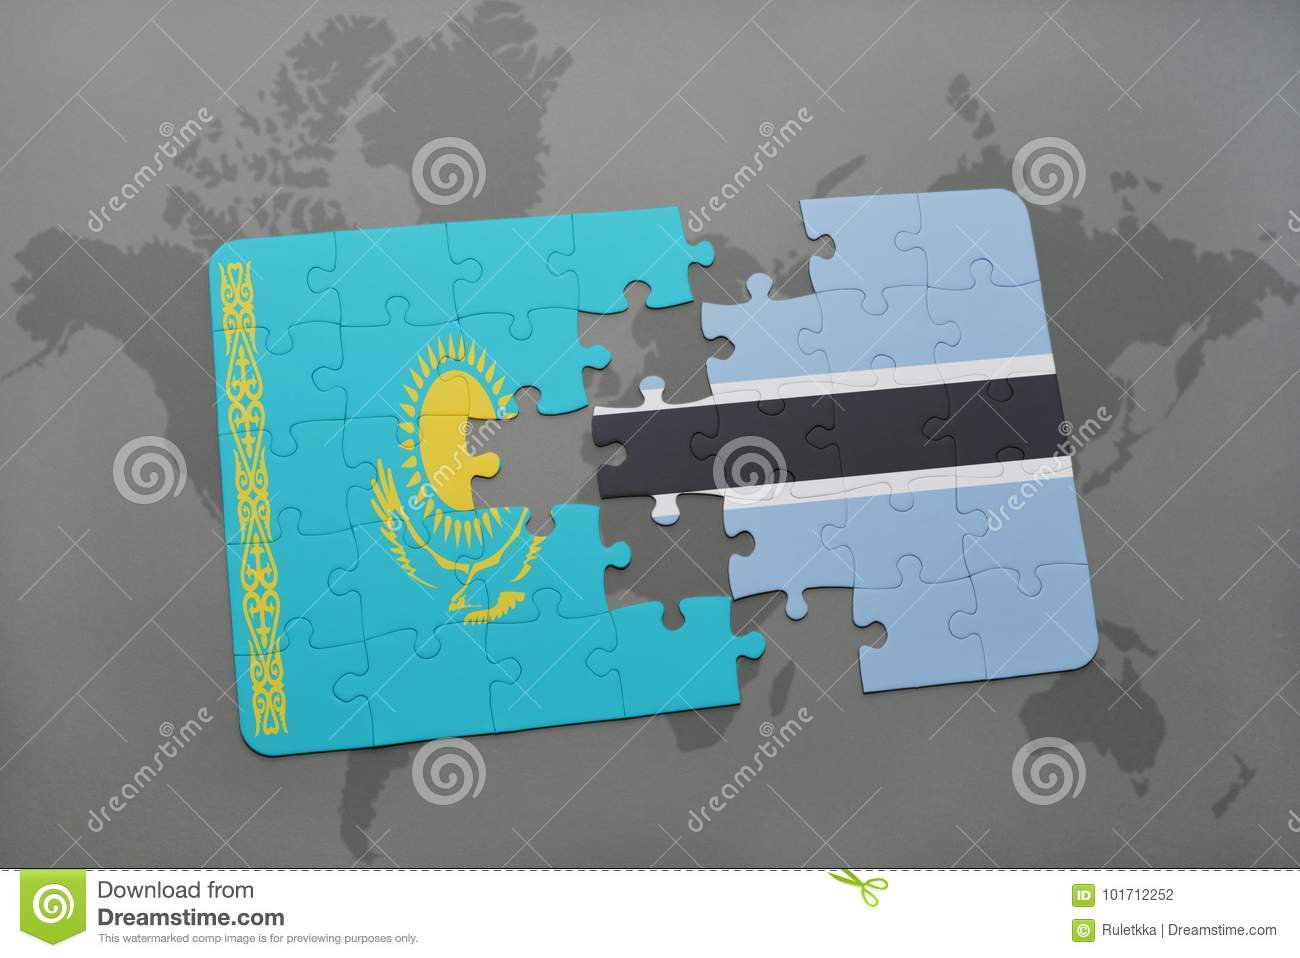 Puzzle With The National Flag Of Kazakhstan And Botswana On A World on map of central asia, map of sri lanka, map of pakistan, map of northern asia, map of canada, map of indian ocean, map of macau, map of finland, map of uzbekistan, map of nepal, map of azerbaijan, map of southeast asia, map of aral sea, map of moldova, map of belarus, map of korea, map of usa, map of dagestan, map of kyrgyzstan, map of ethiopia,